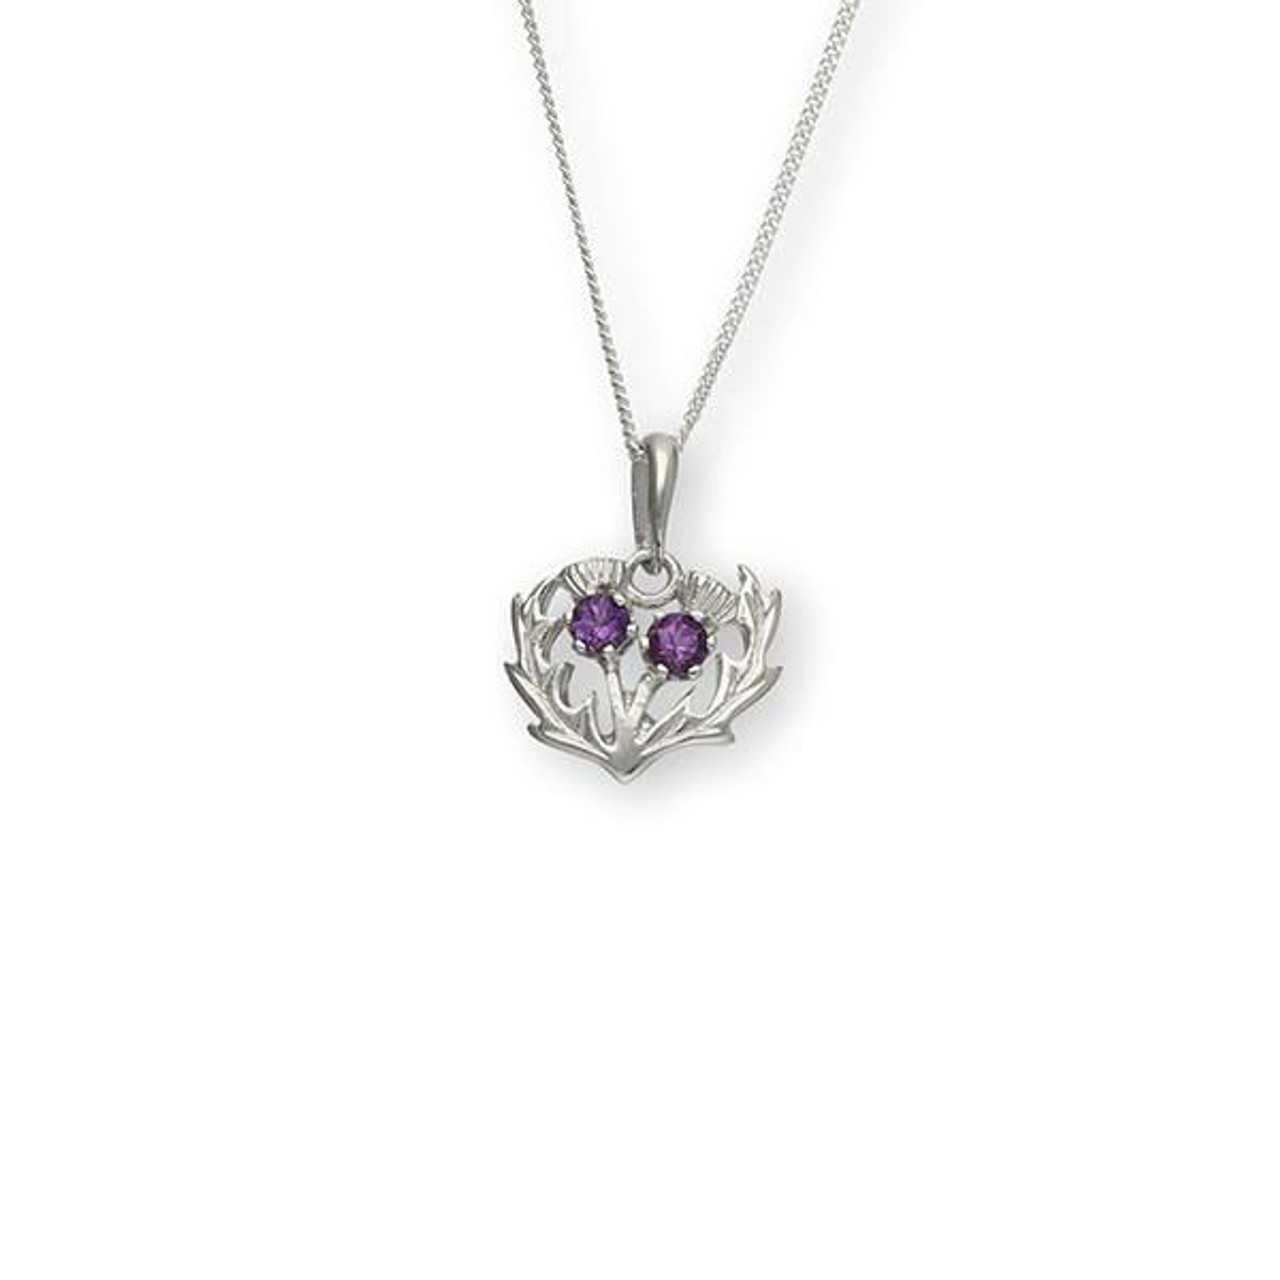 Double Thistle Pendant Necklace with Amethyst